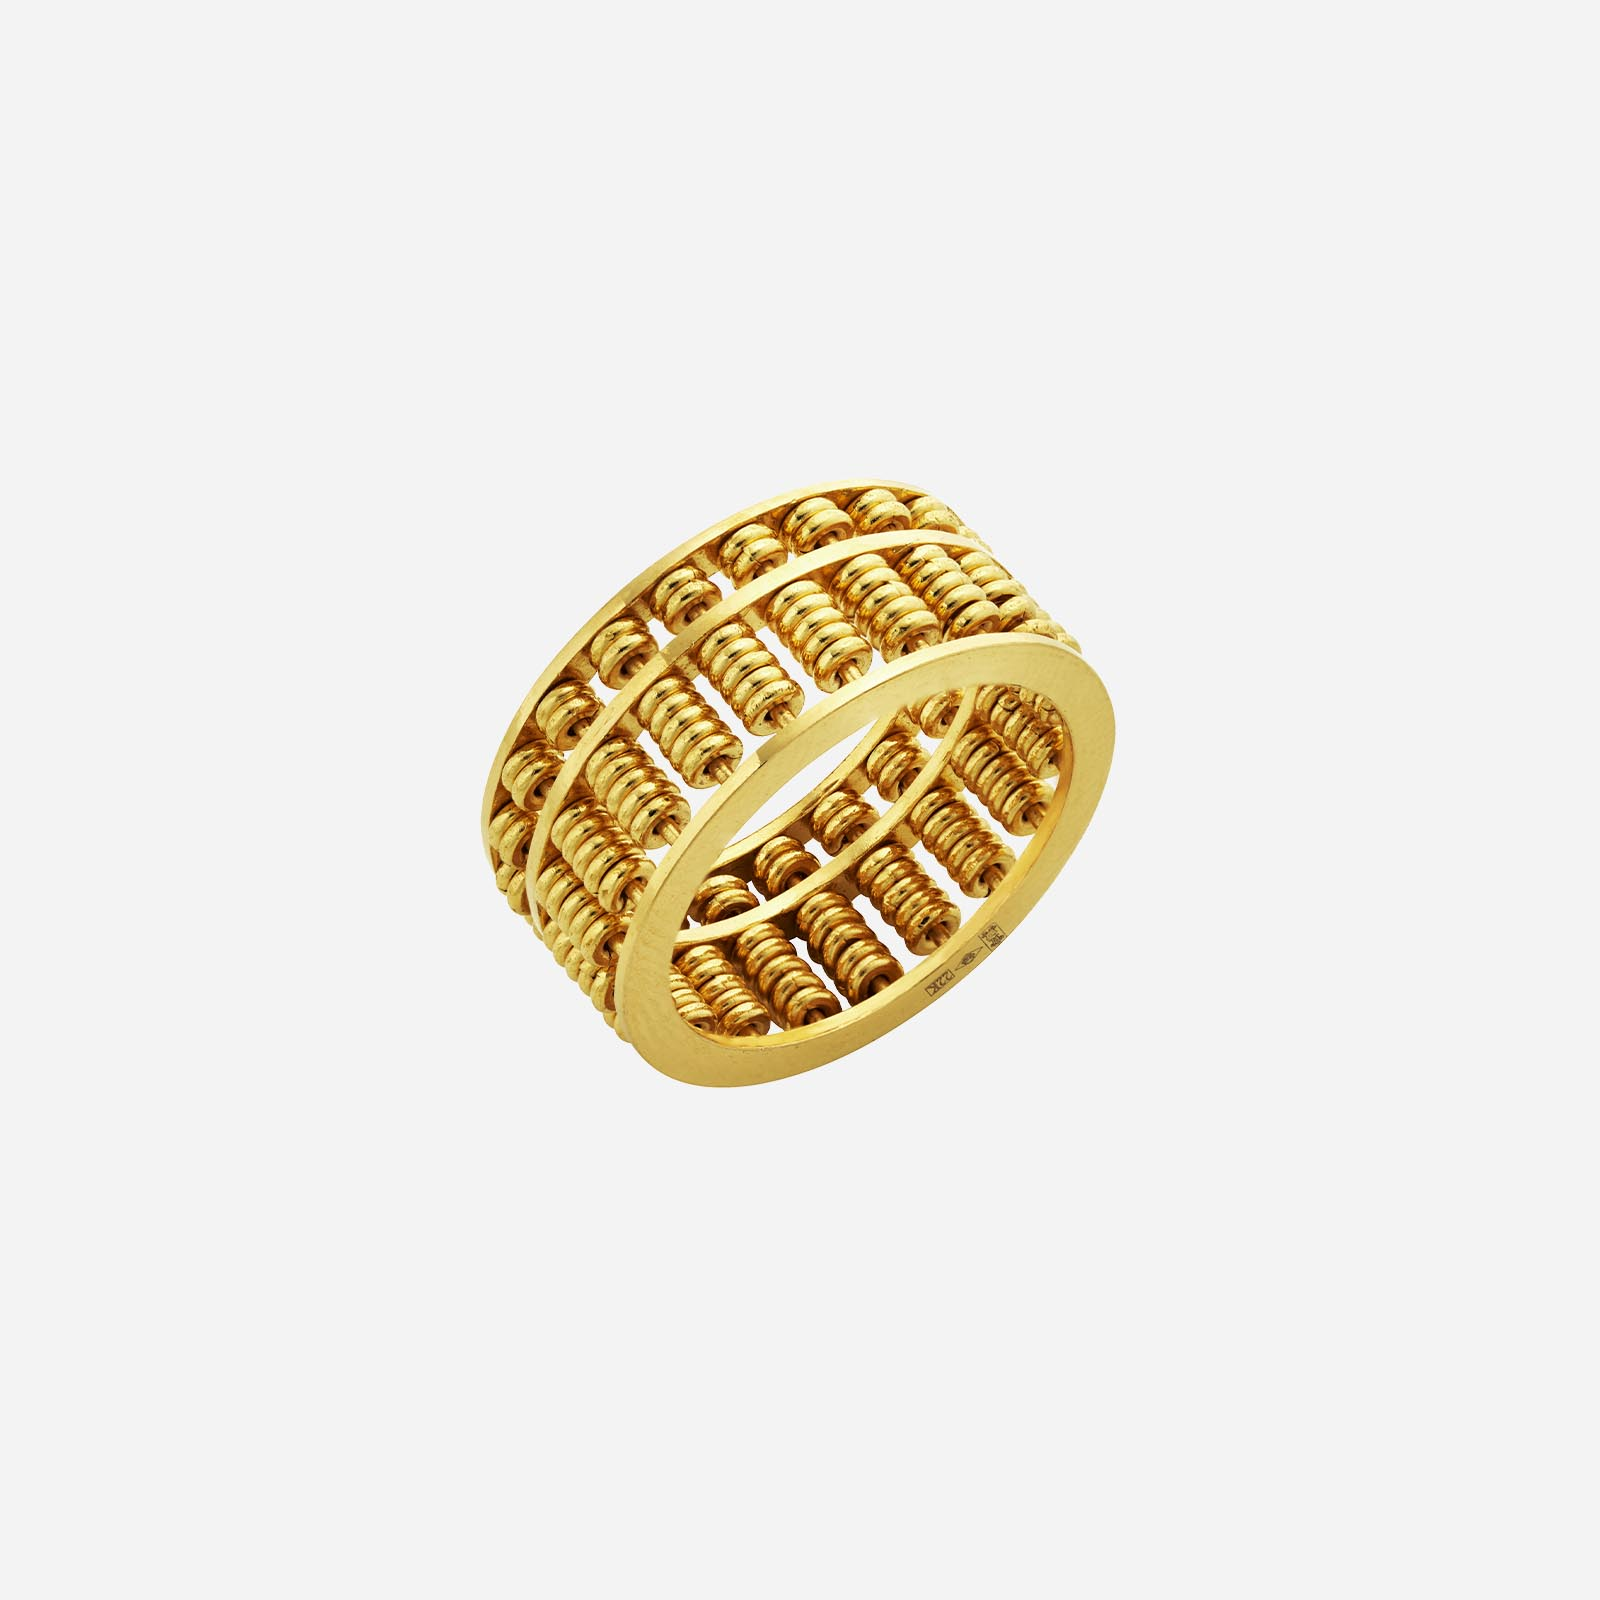 Abacus Ring (10mm)